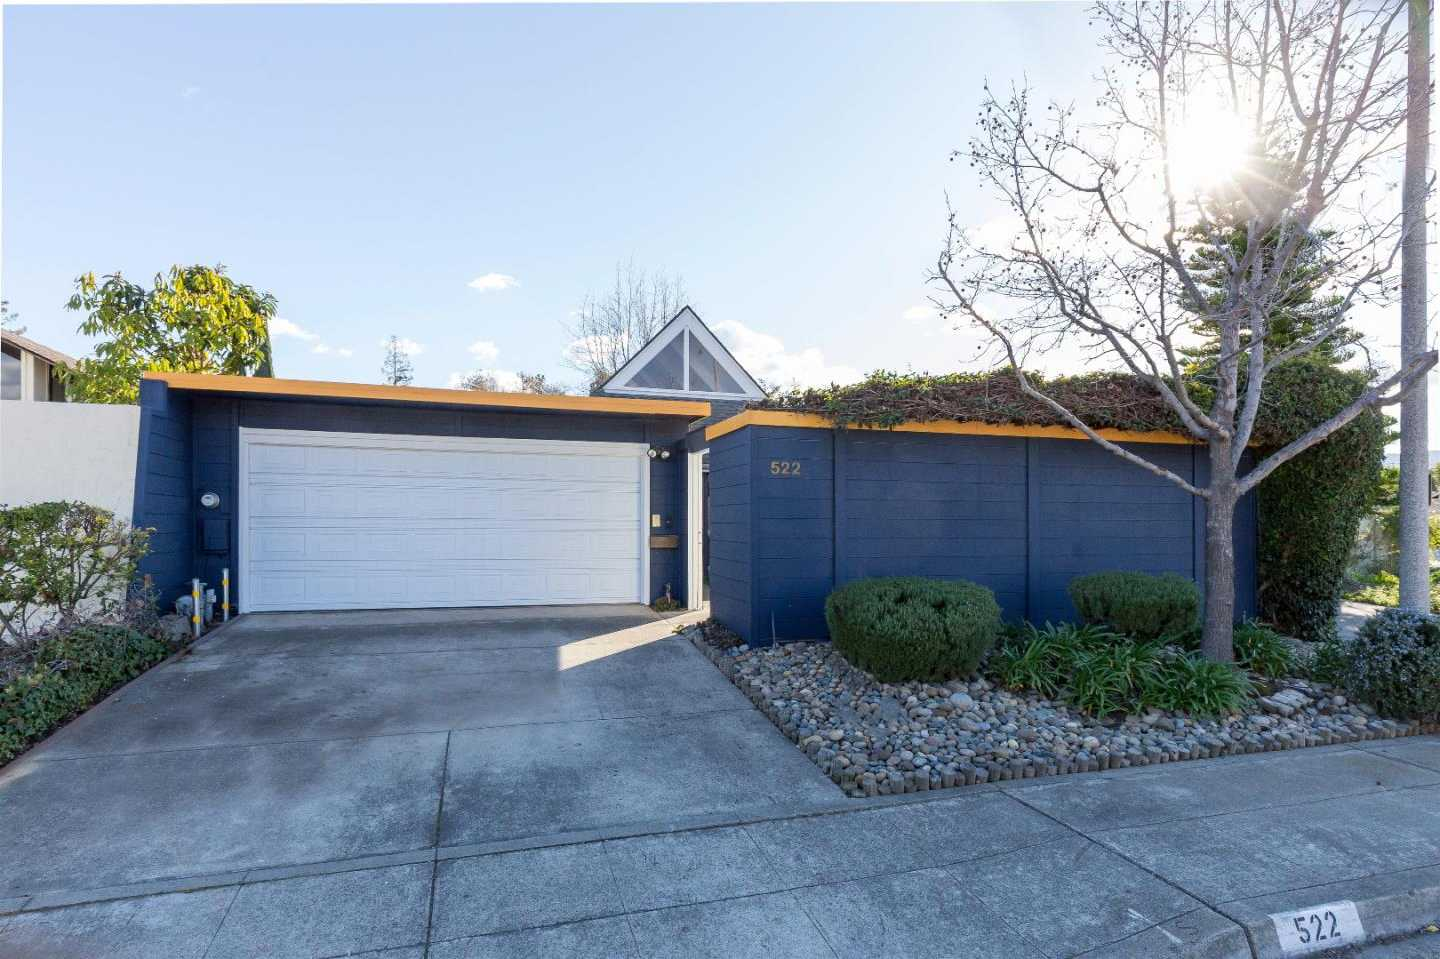 $1,595,799 - 3Br/2Ba -  for Sale in Sunnyvale